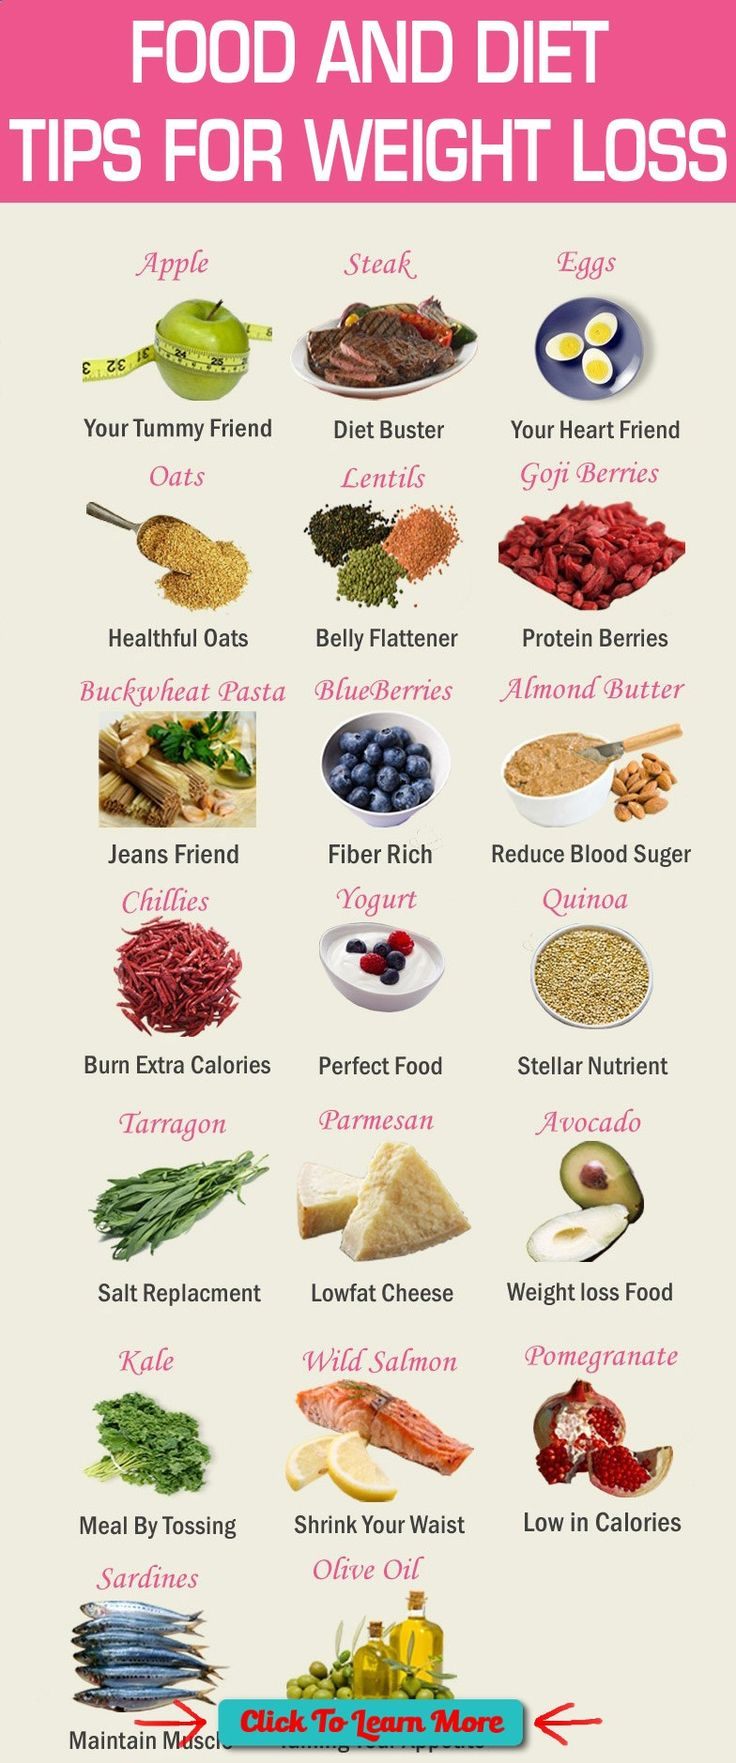 #FastestWayToLoseWeight by EATING, Click to learn more, Healthy Weight Loss Tips Food and diet tips! For more weight loss tips just click on the image!...http://www.fat-loss-fast.info/ , #HealthyRecipes, #FitnessRecipes, #BurnFatRecipes, #WeightLossRecipes, #WeightLossDiets